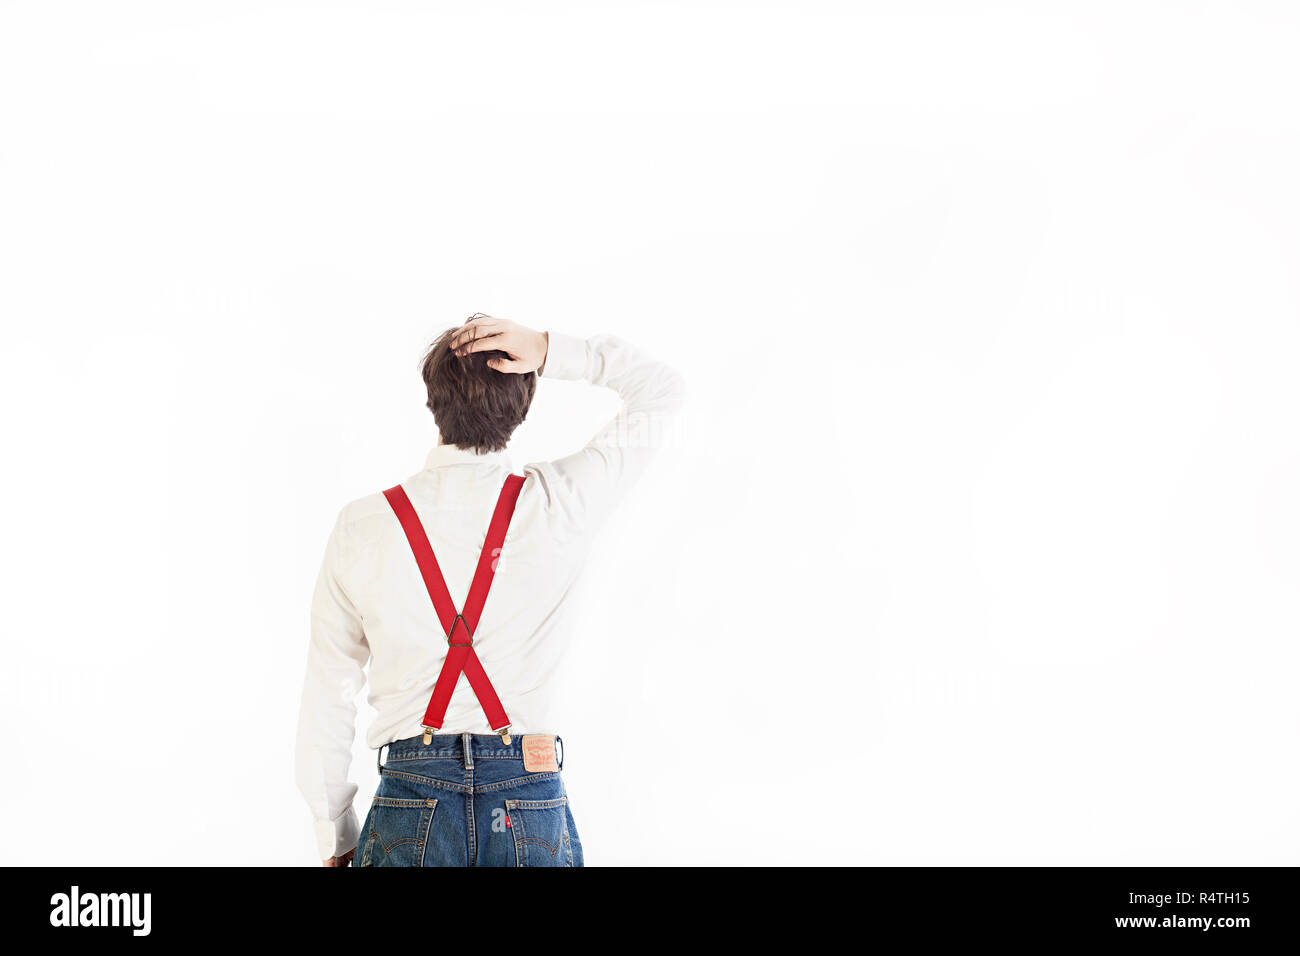 A man in a white shirt and red suspenders has his back to the camera and is looking up Stock Photo